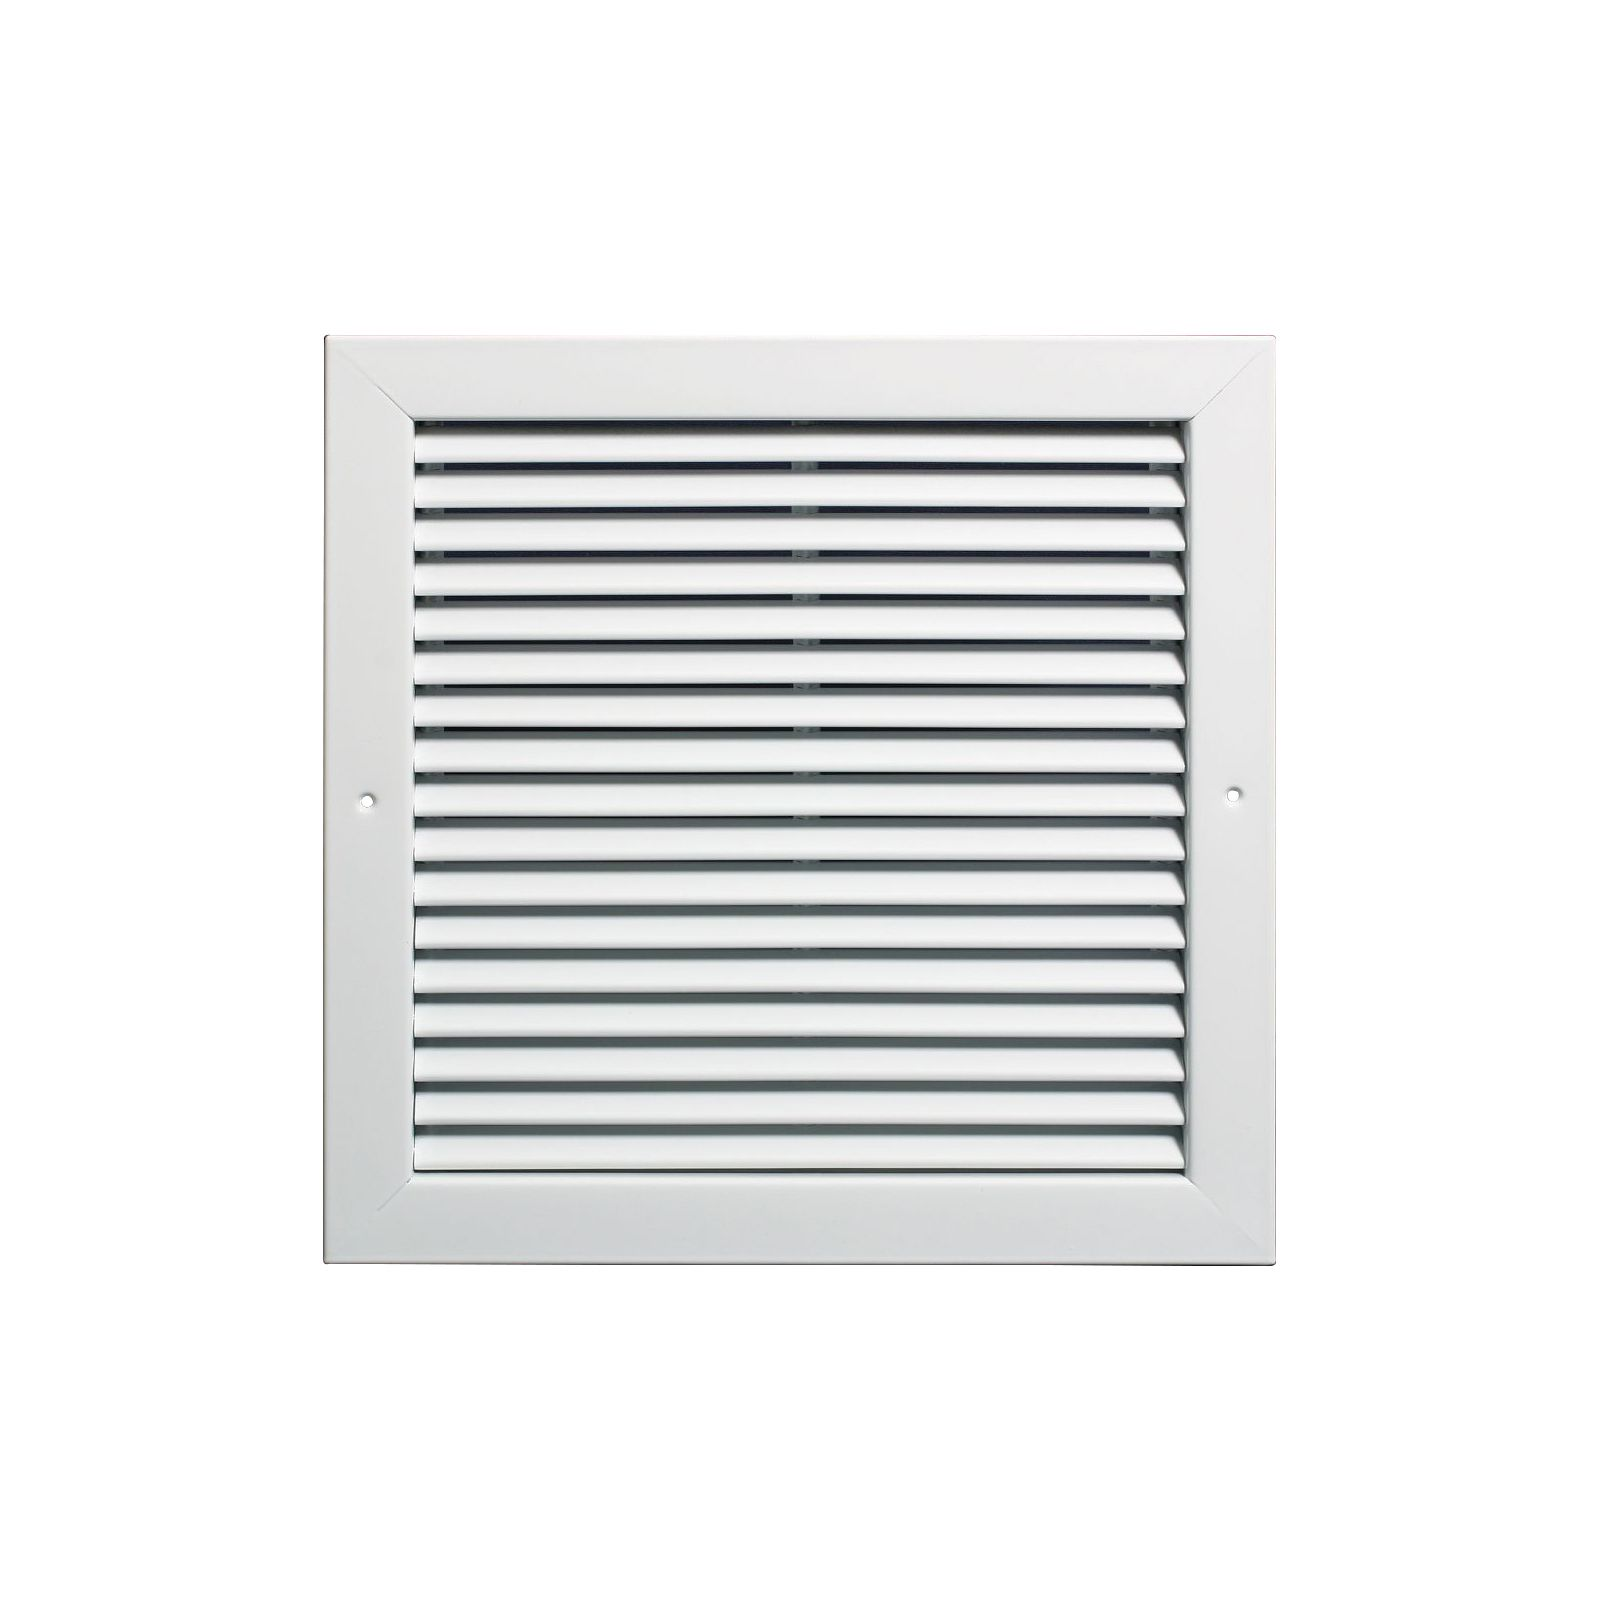 "Aluminum Return Air Grille, 24"" X 8"" White"